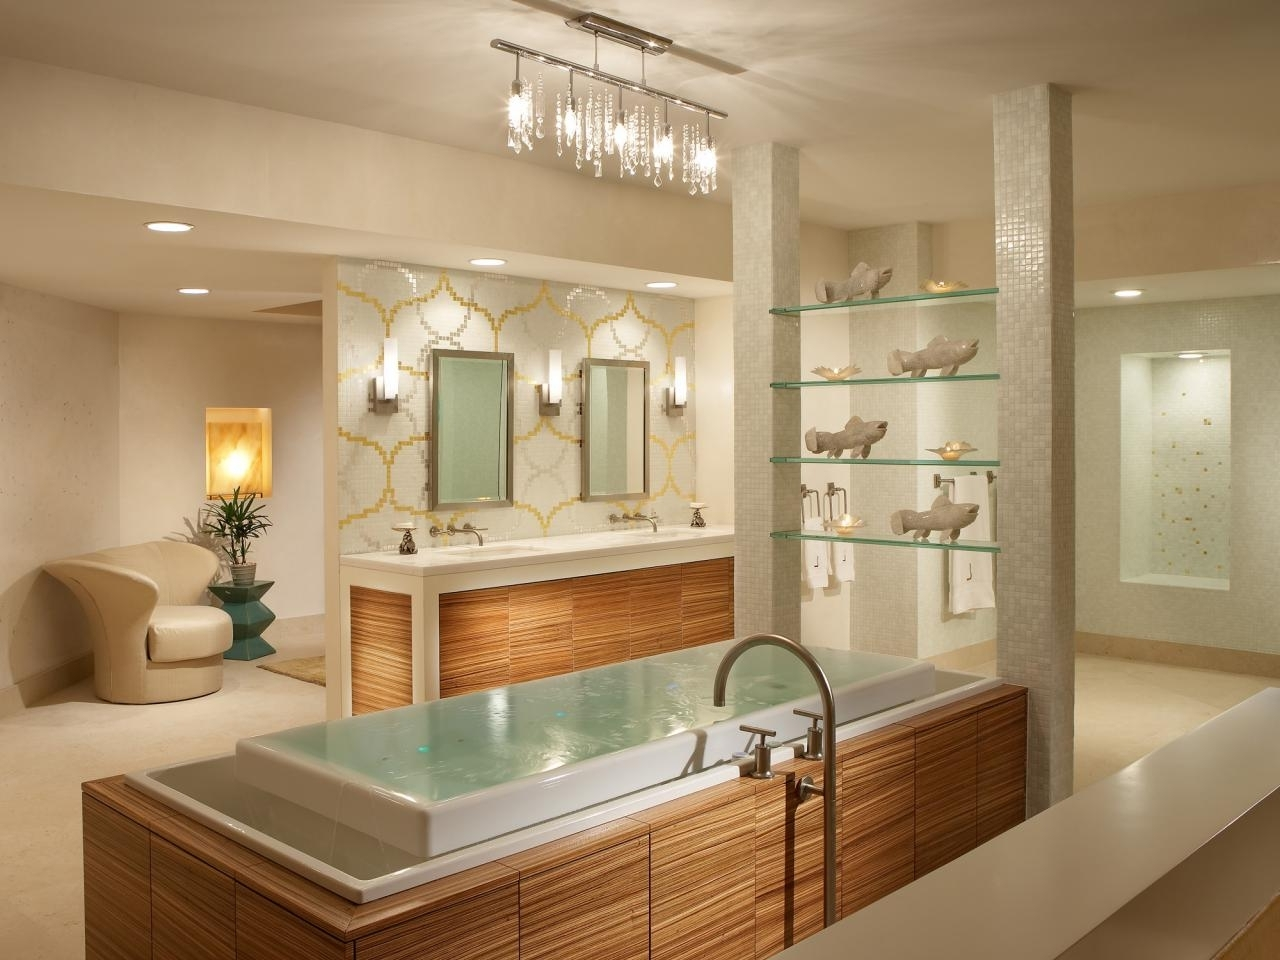 Amusing Modern Bathroom Lighting Large Sink With A Small Chandelier Throughout Well Known Chandelier Bathroom Lighting (View 2 of 20)